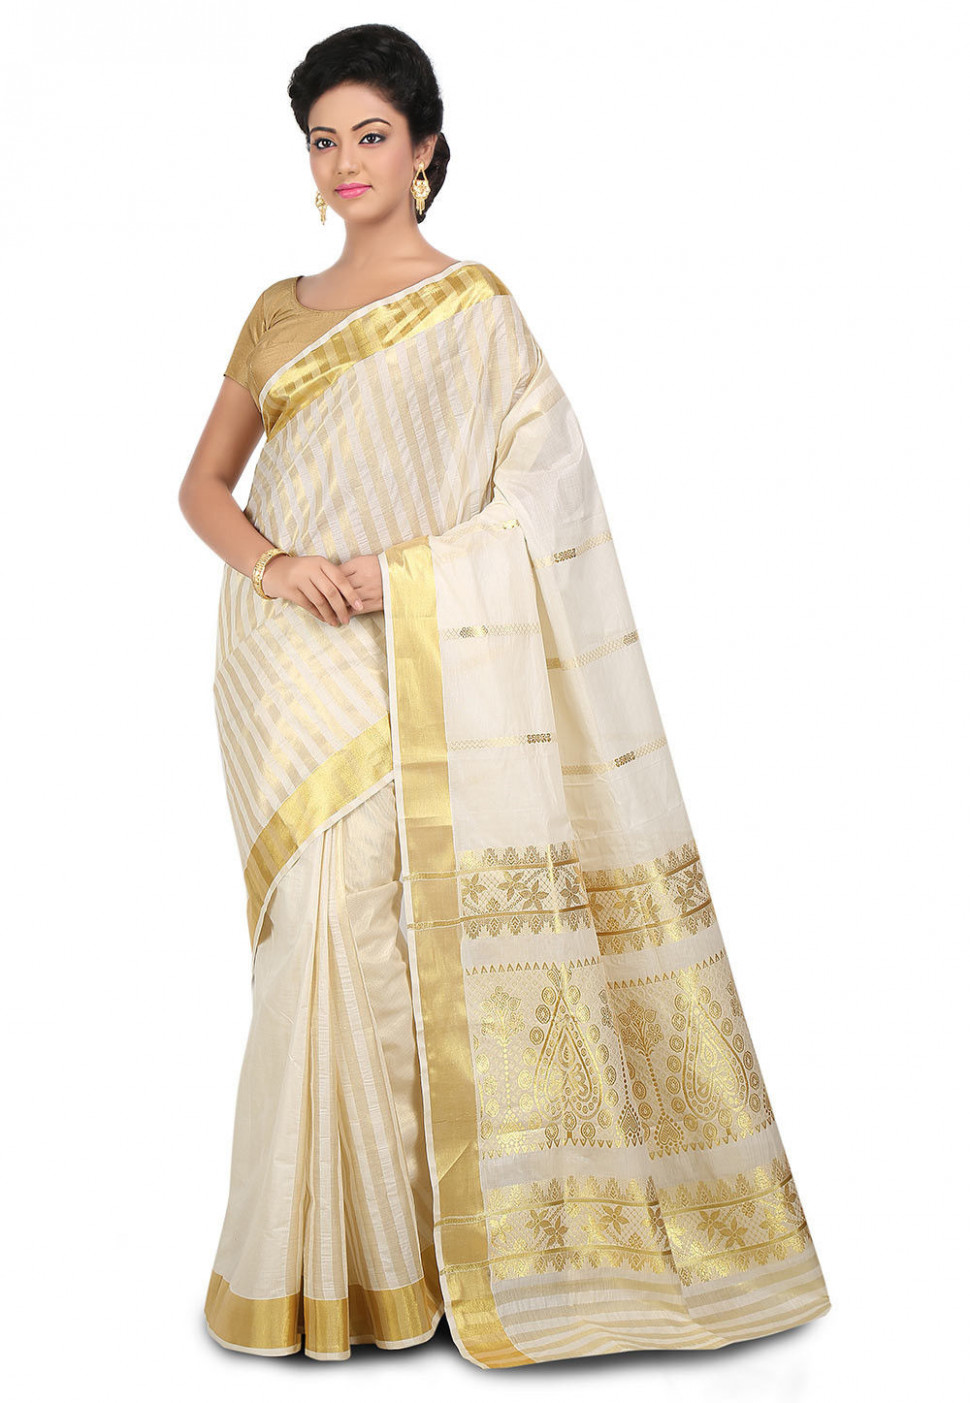 Woven Kerala Kasavu Cotton Saree in Off White : SPN2703